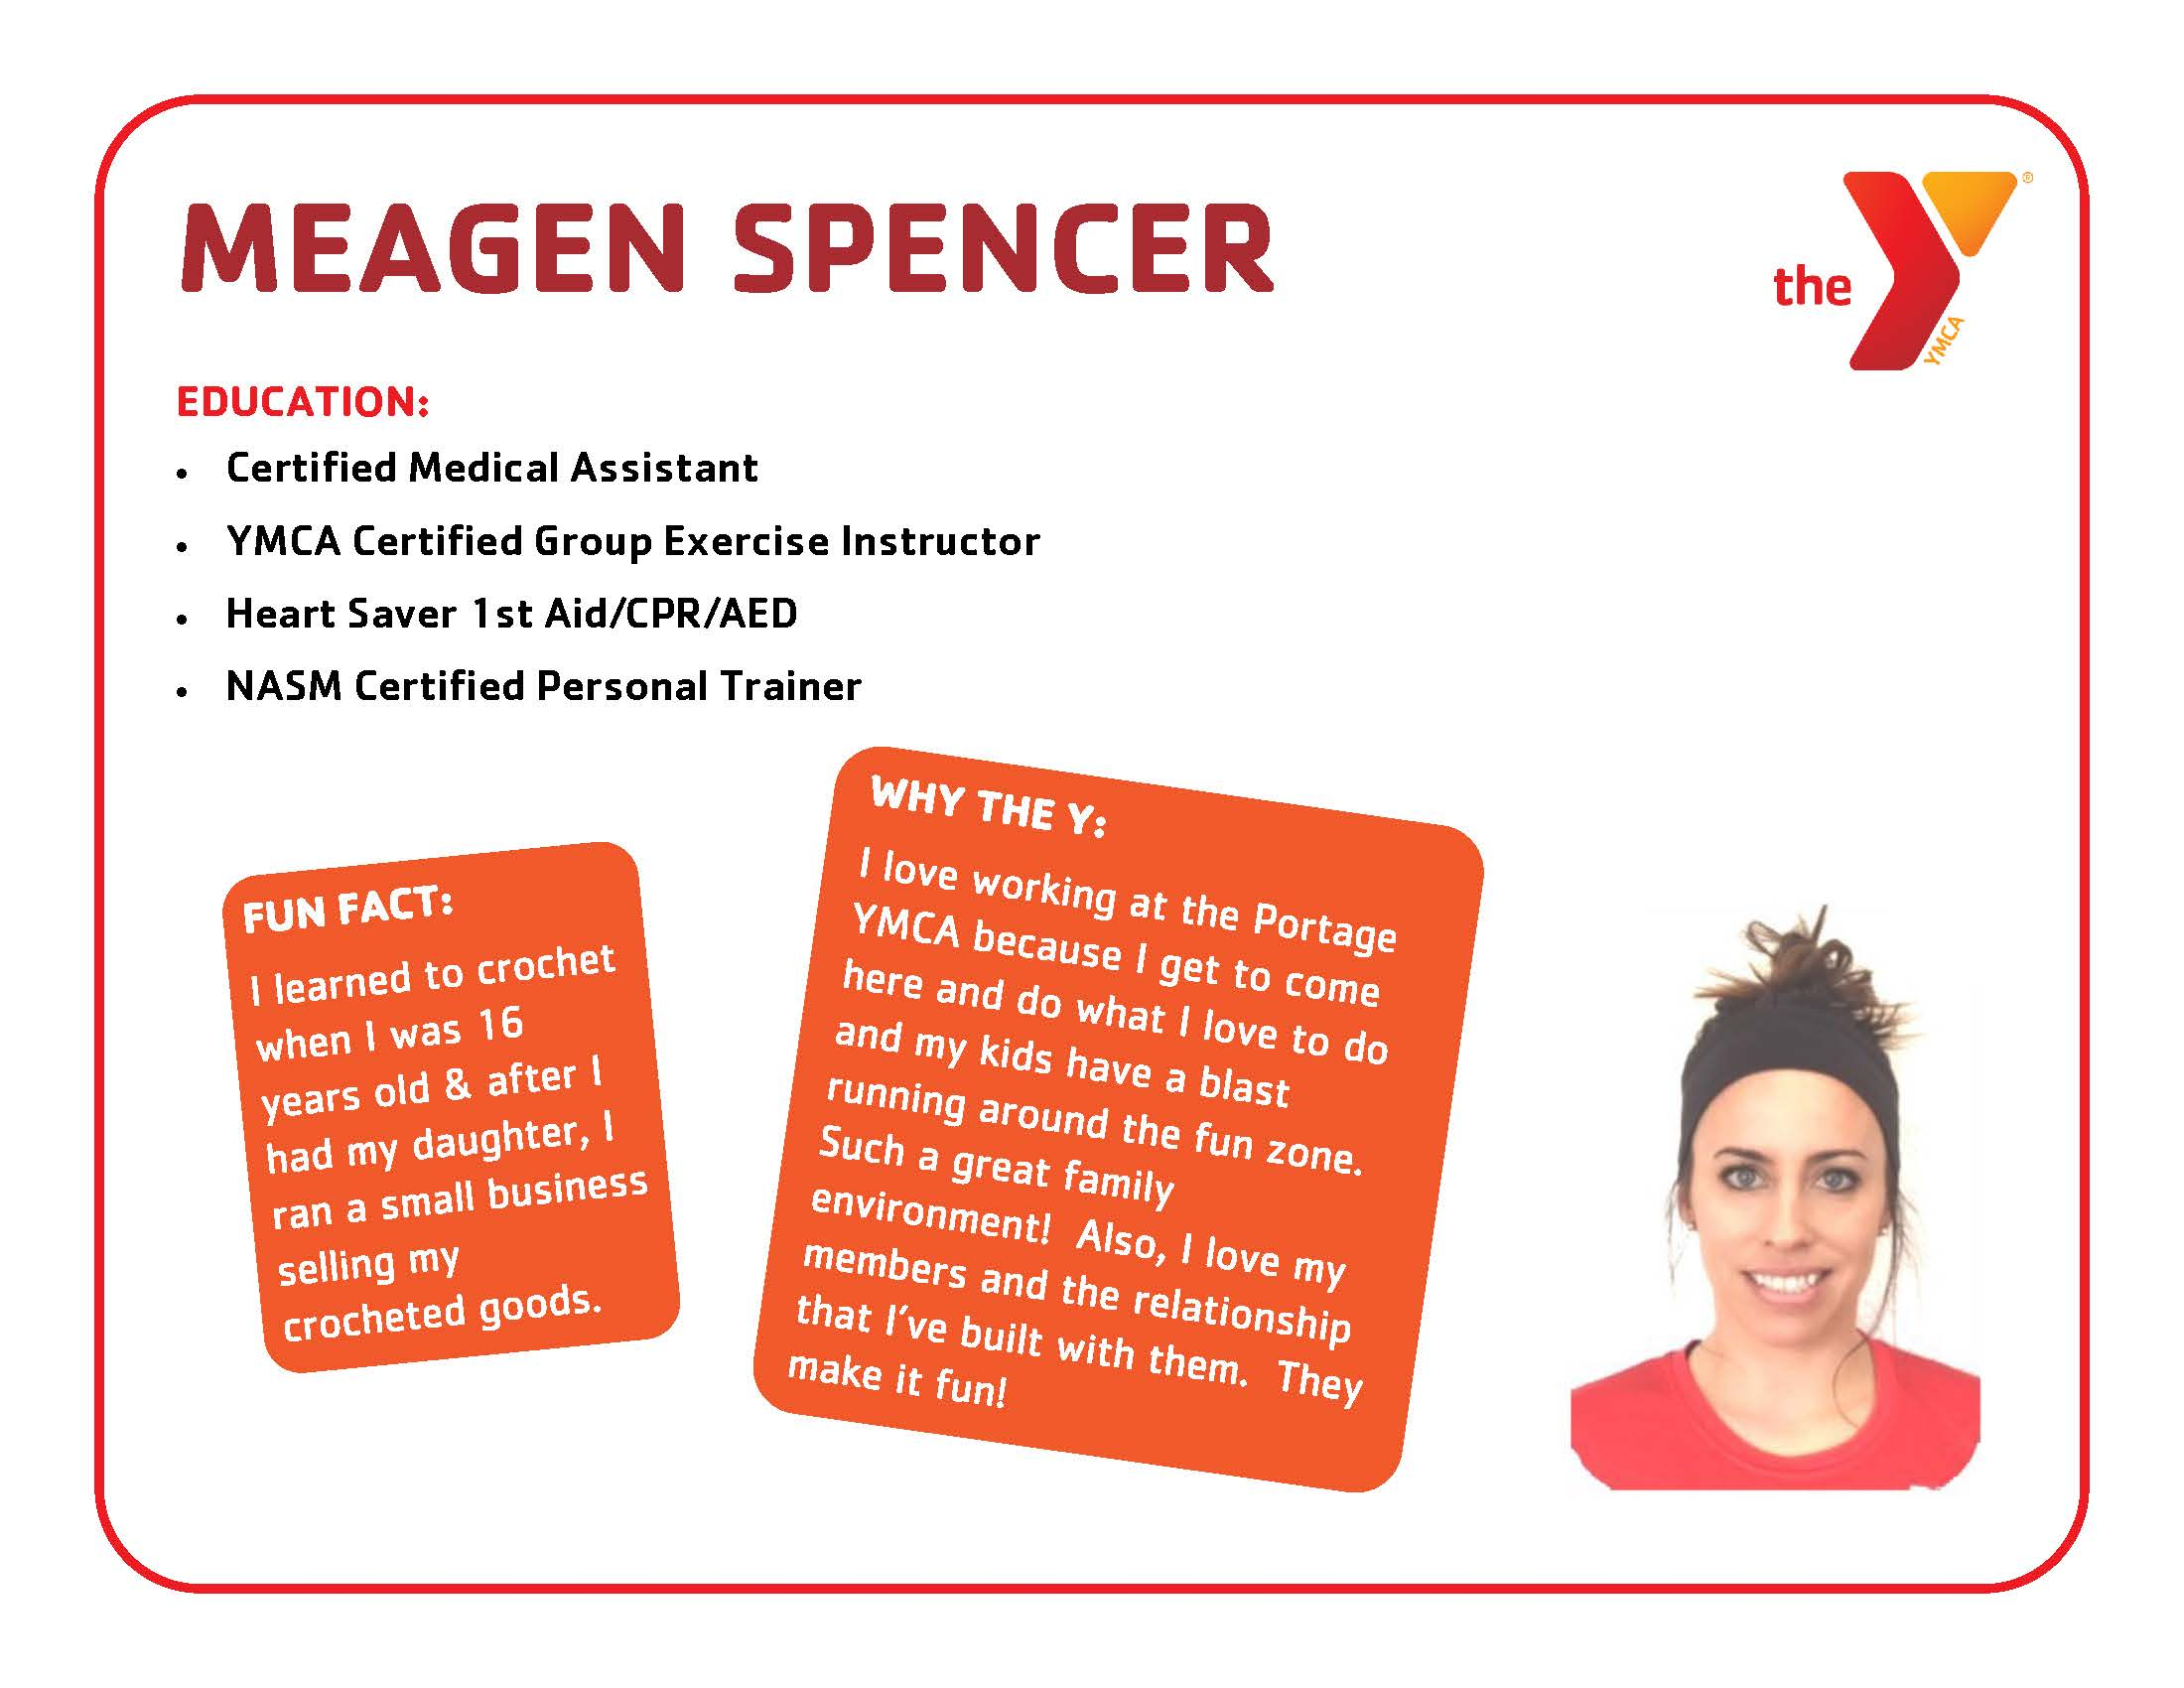 Portage township ymca the y so much more meagen spencer xflitez Image collections